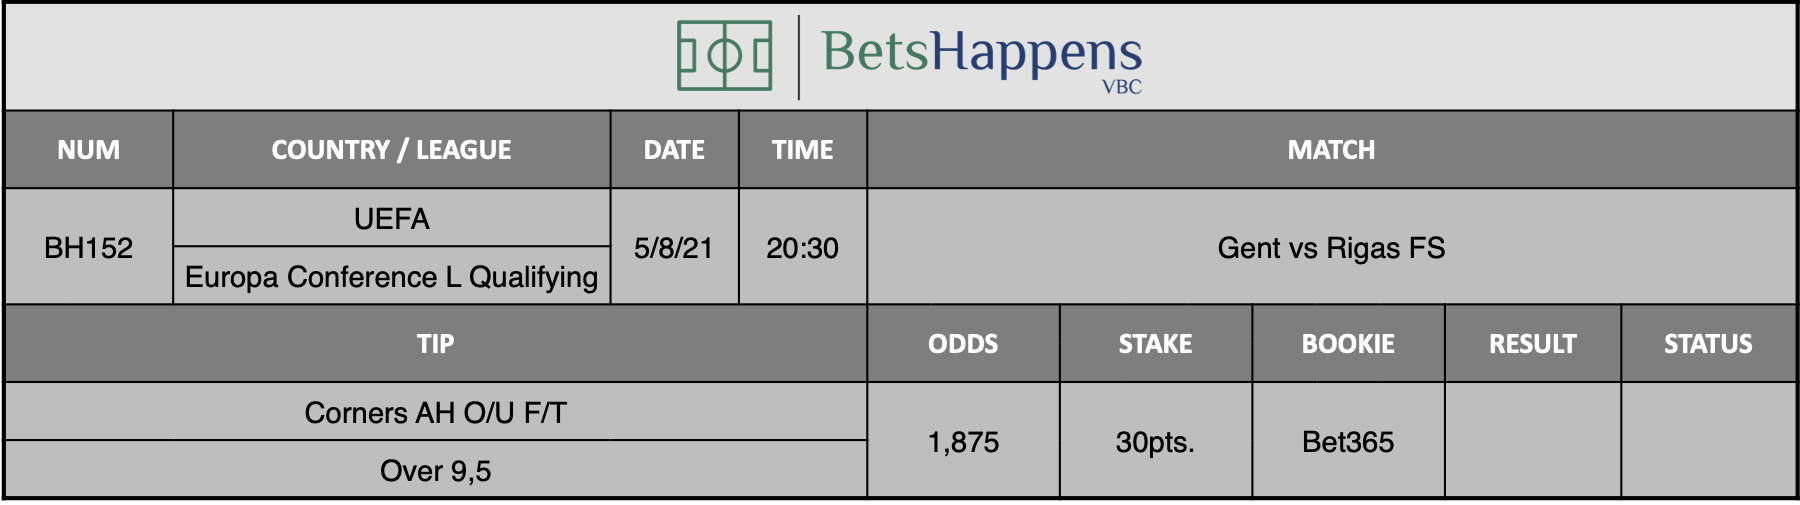 Our advice for the Gent vs Rigas FS game in which Corners AH O / U F / T Over 9.5 is recommended